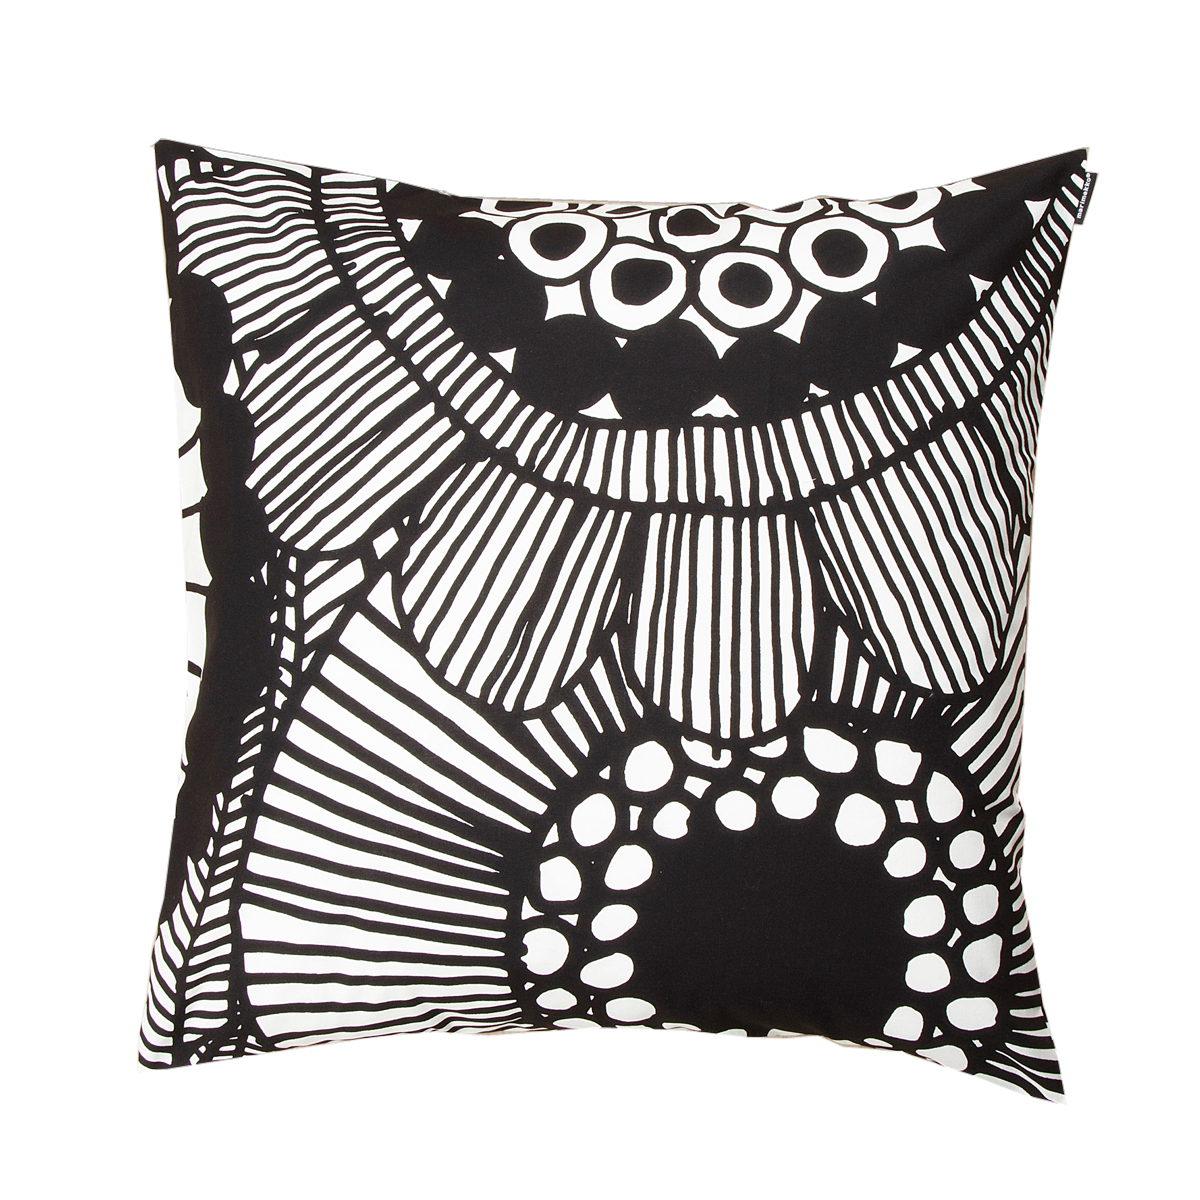 Marimekko Siirtolapuutarha White / Black Large Throw Pillow - Marimekko Fabric & Throw Pillow Sale